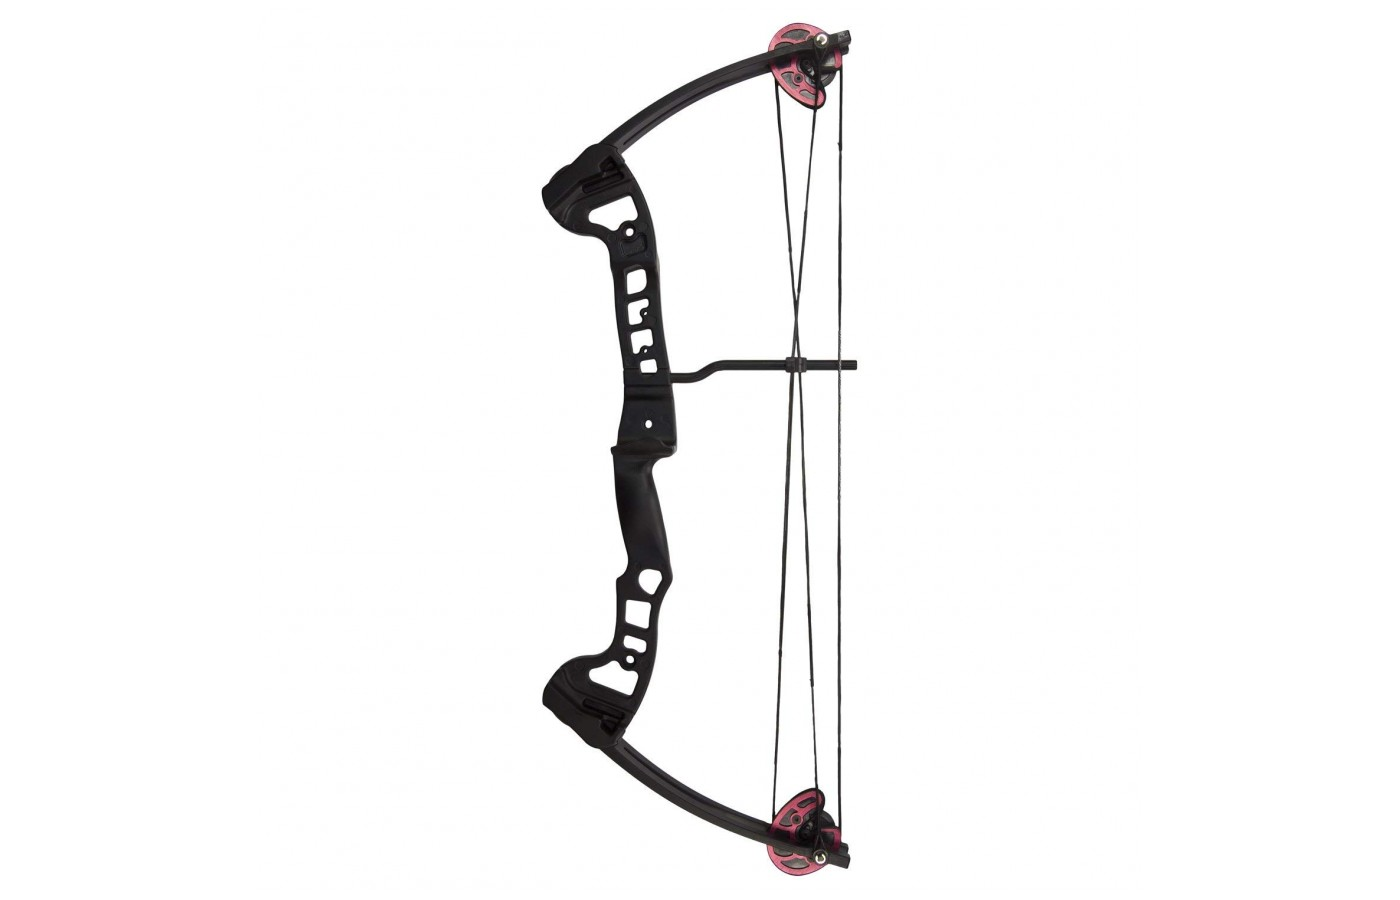 The Barnett Vortex Hunter is the most powerful Barnett Vortex bow.